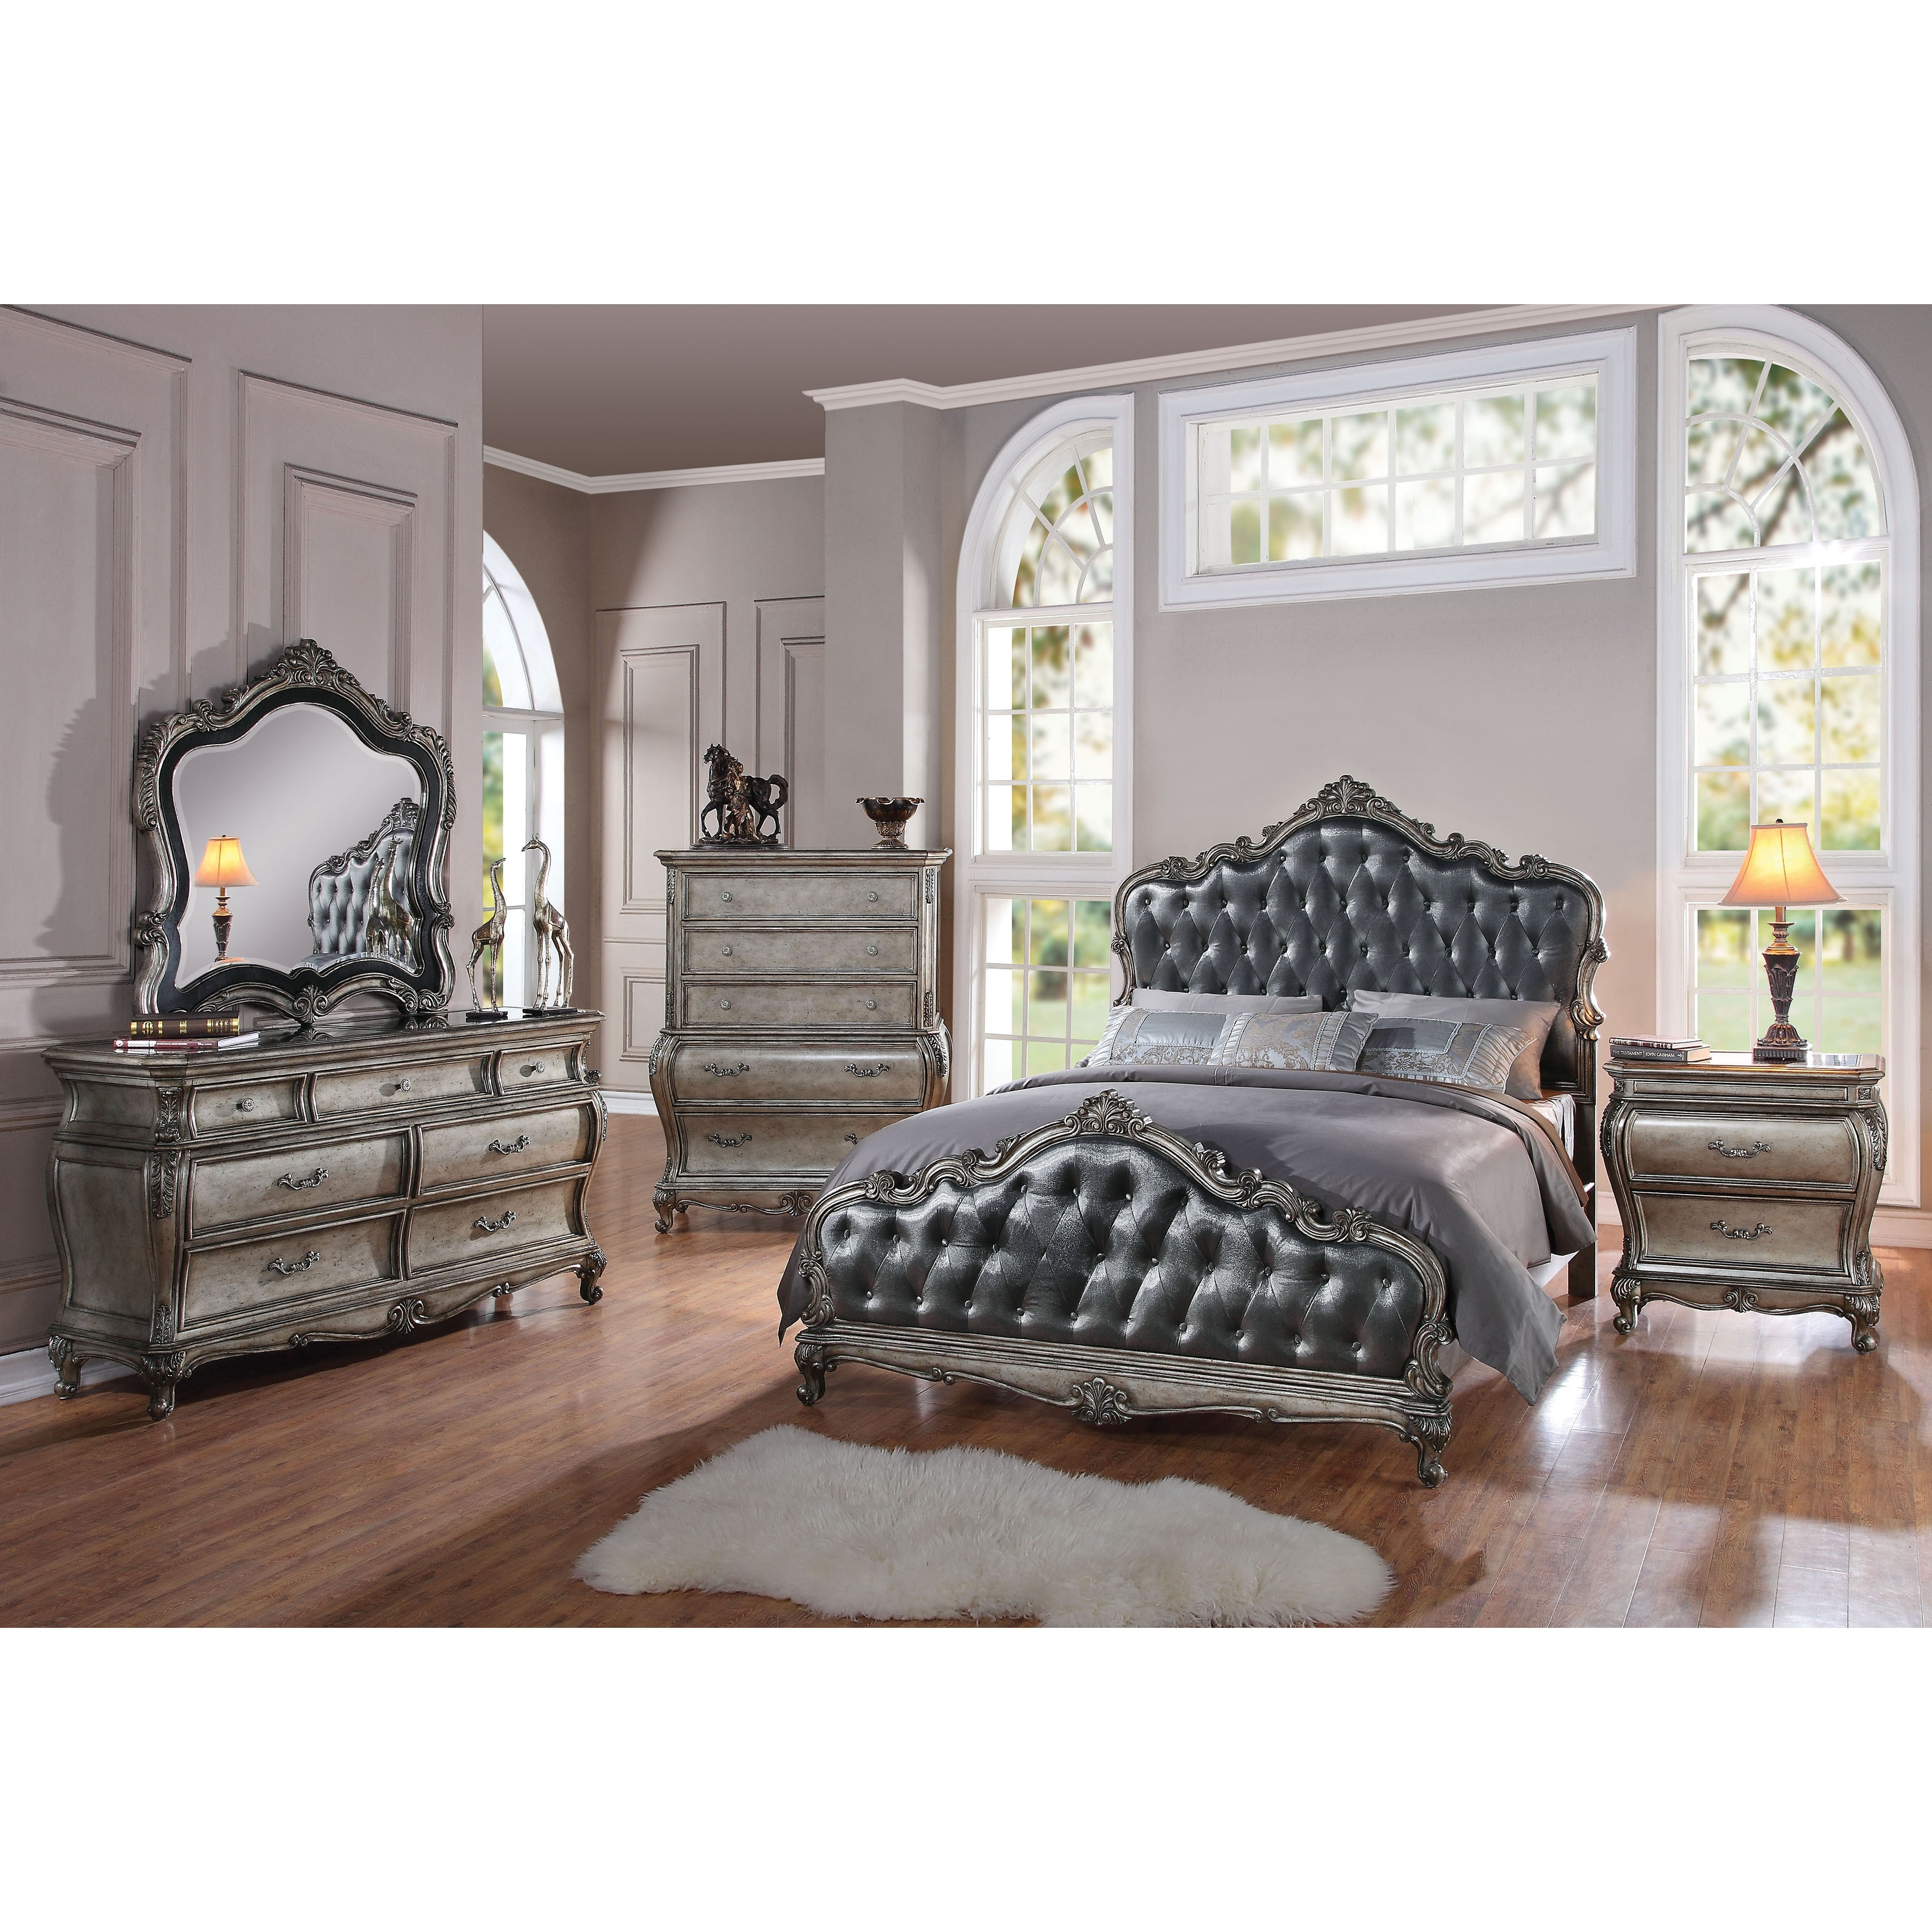 Acme Furniture Chantelle 4-Piece Bedroom Set, Antique Platinum with Silver  Gray Silk-Like Fabric